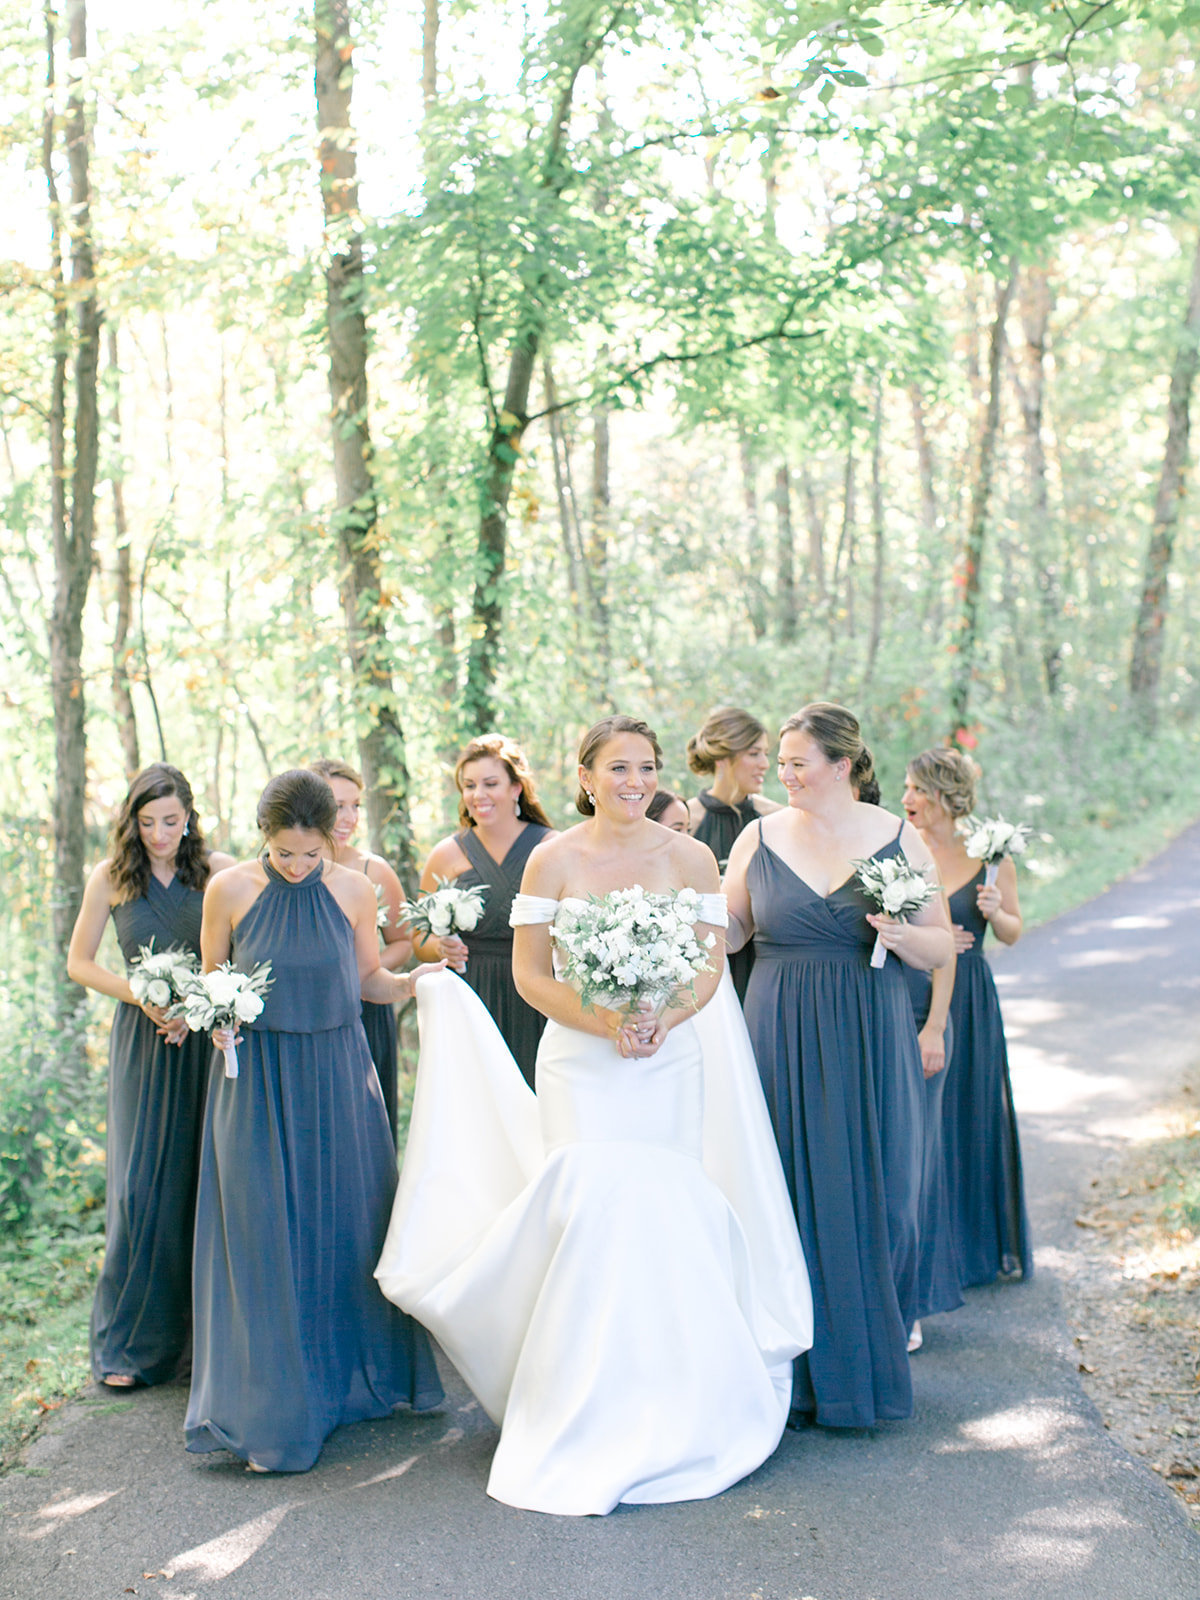 Meg+Greg_Wedding-287